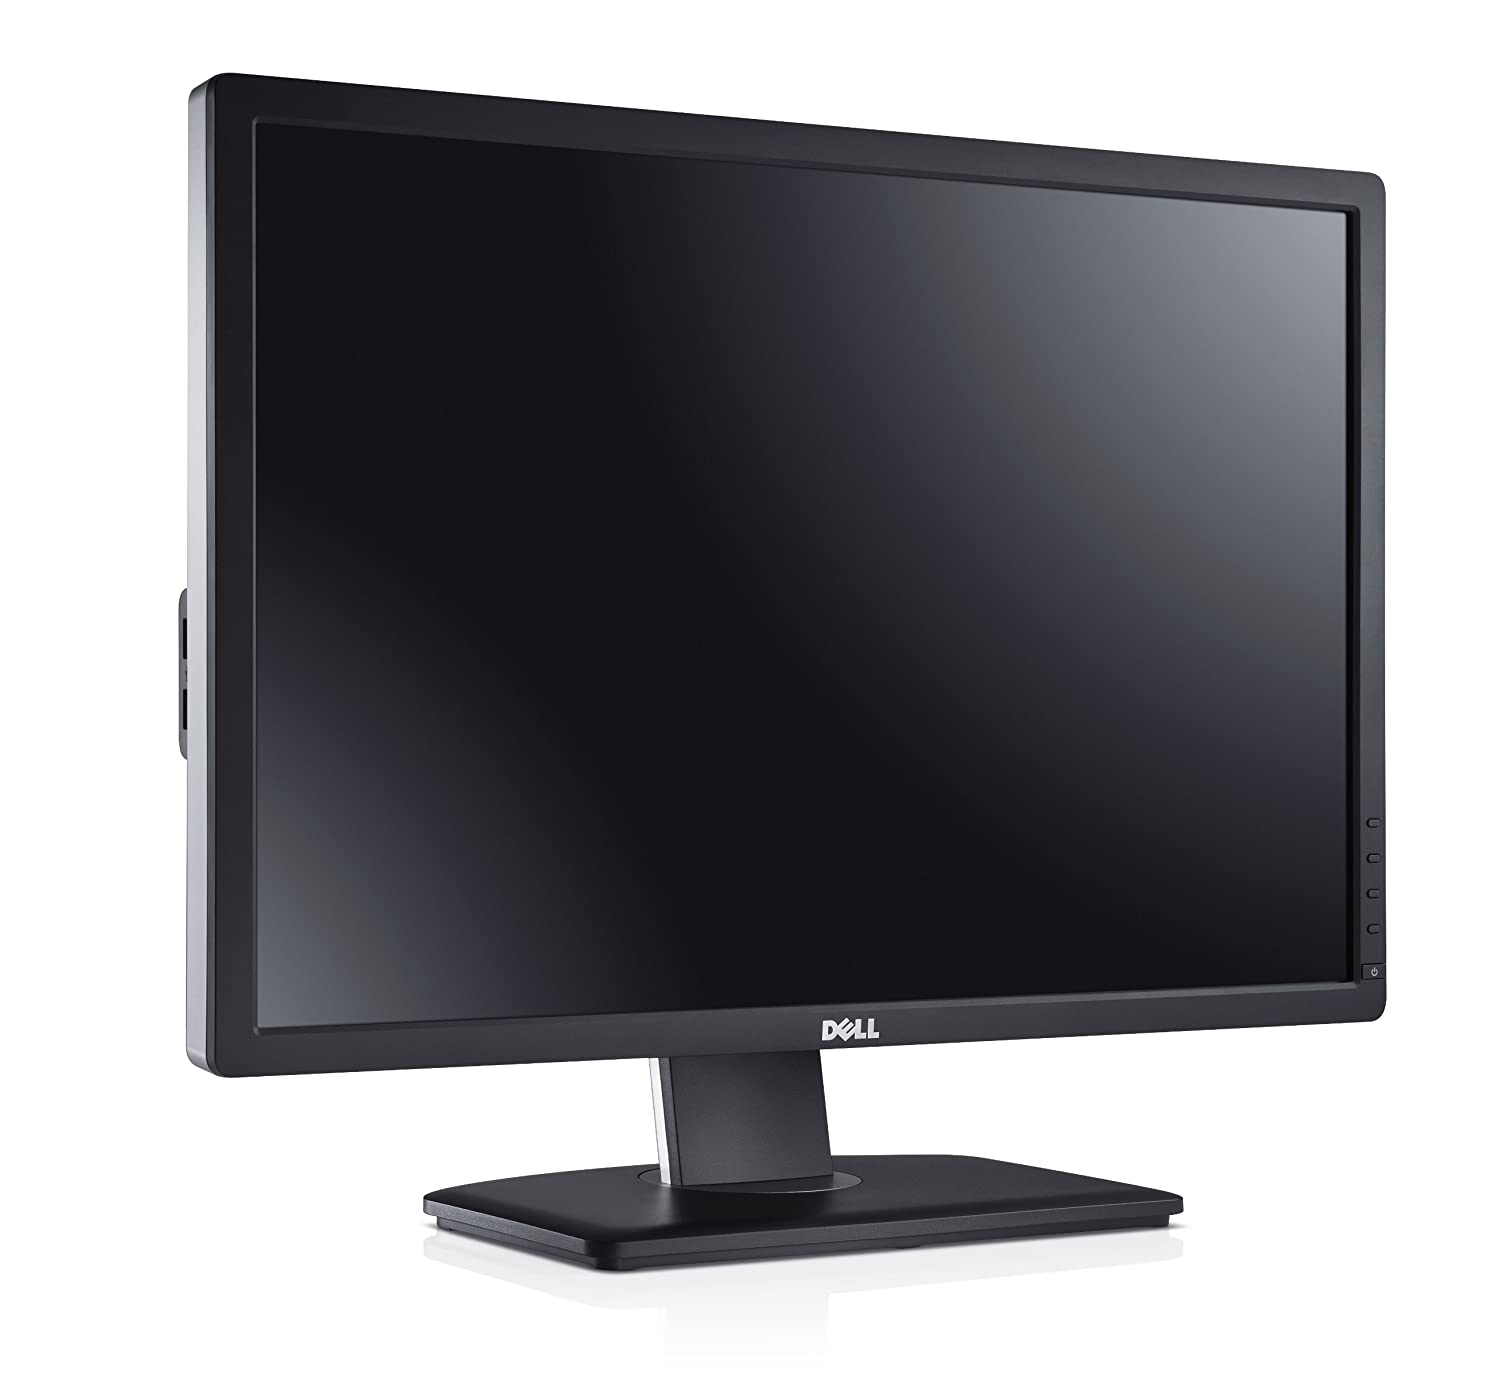 Dell UltraSharp U2412M 24″ LED LCD Monitor – 16:10 – 8 ms, $275.2